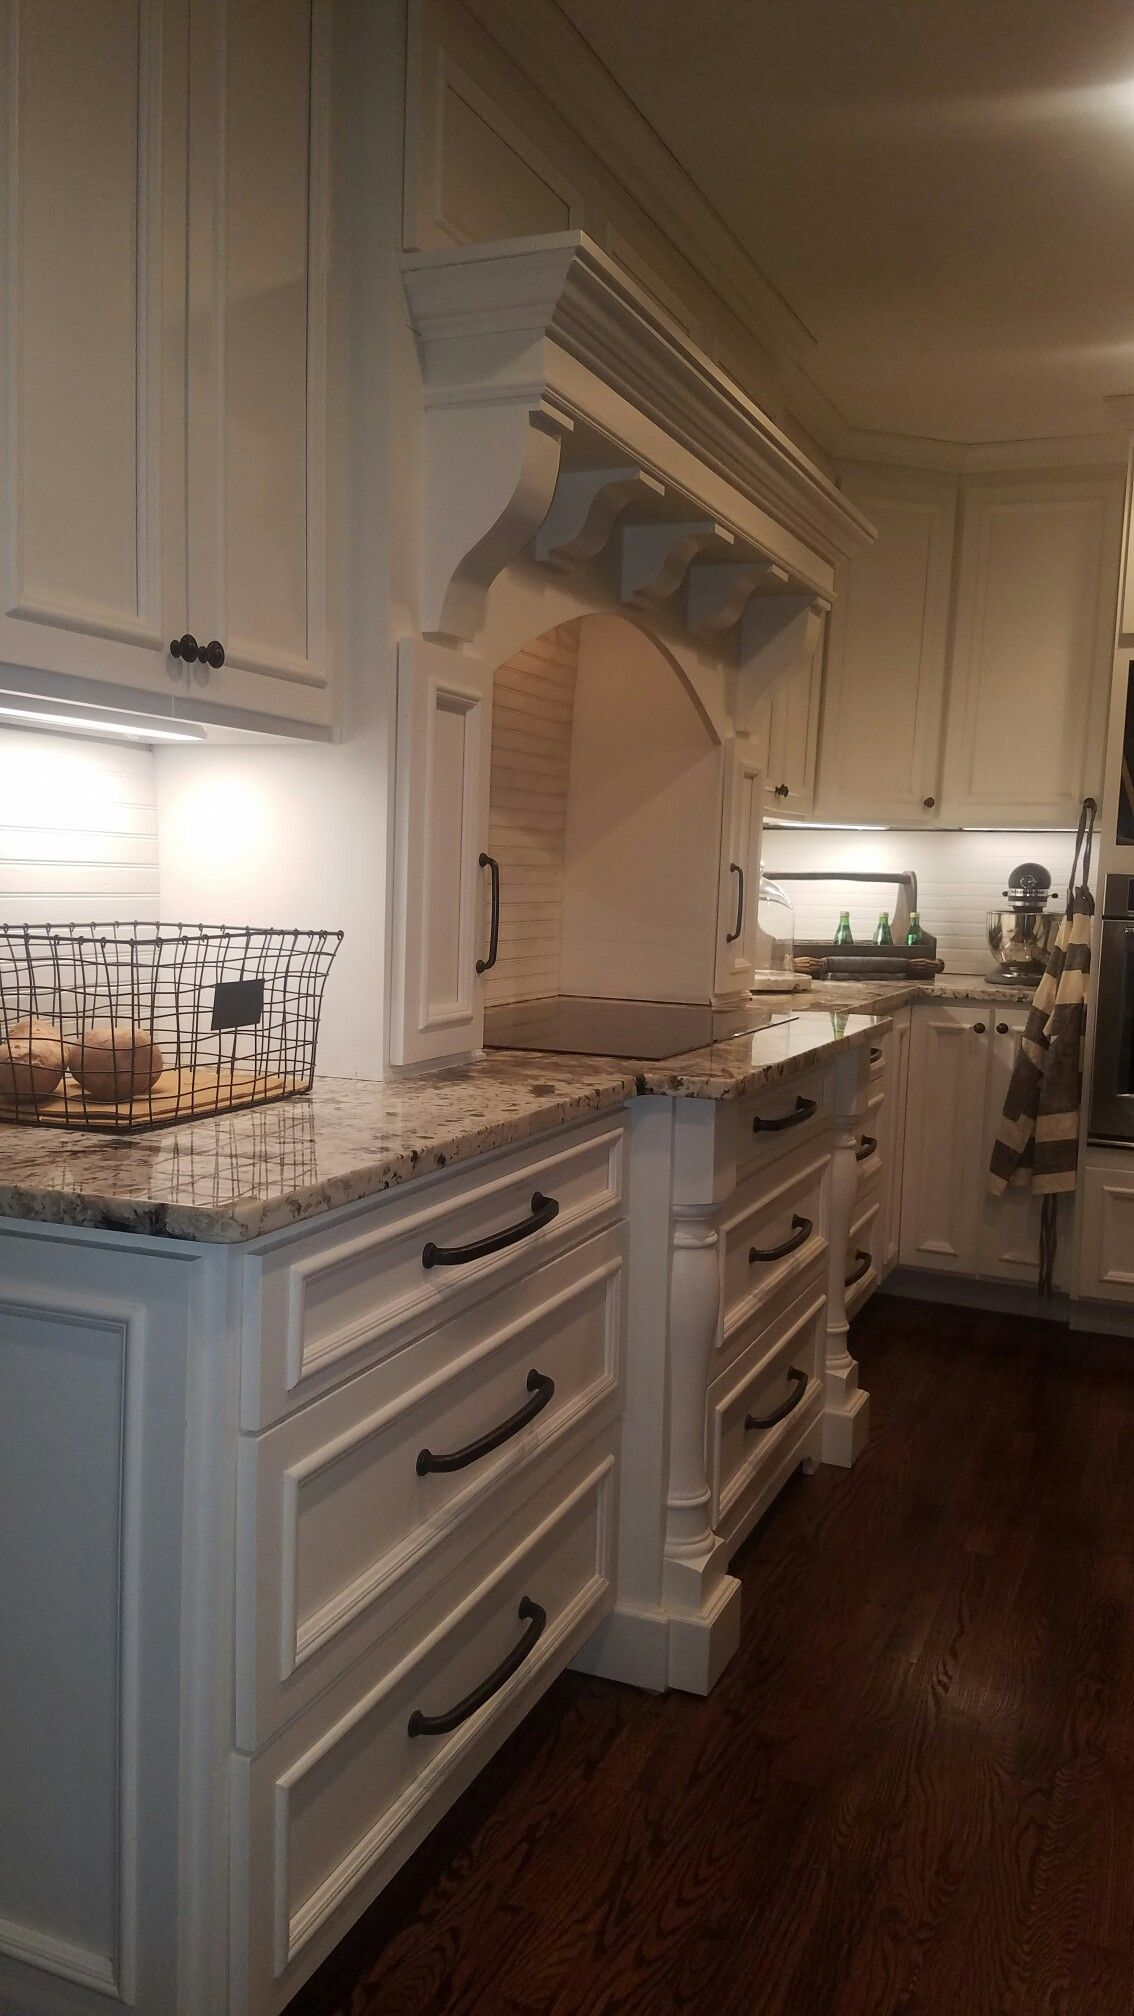 Pin by Brooksie on Kitchen Reno Before&After 2015 Cox5